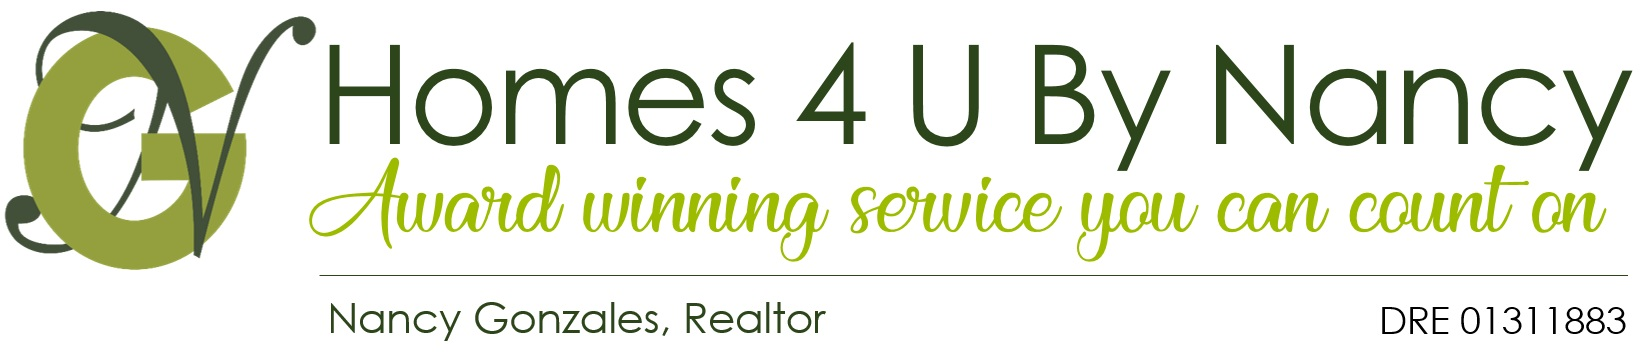 Nancy Gonzales ~ Homes 4 U By Nancy